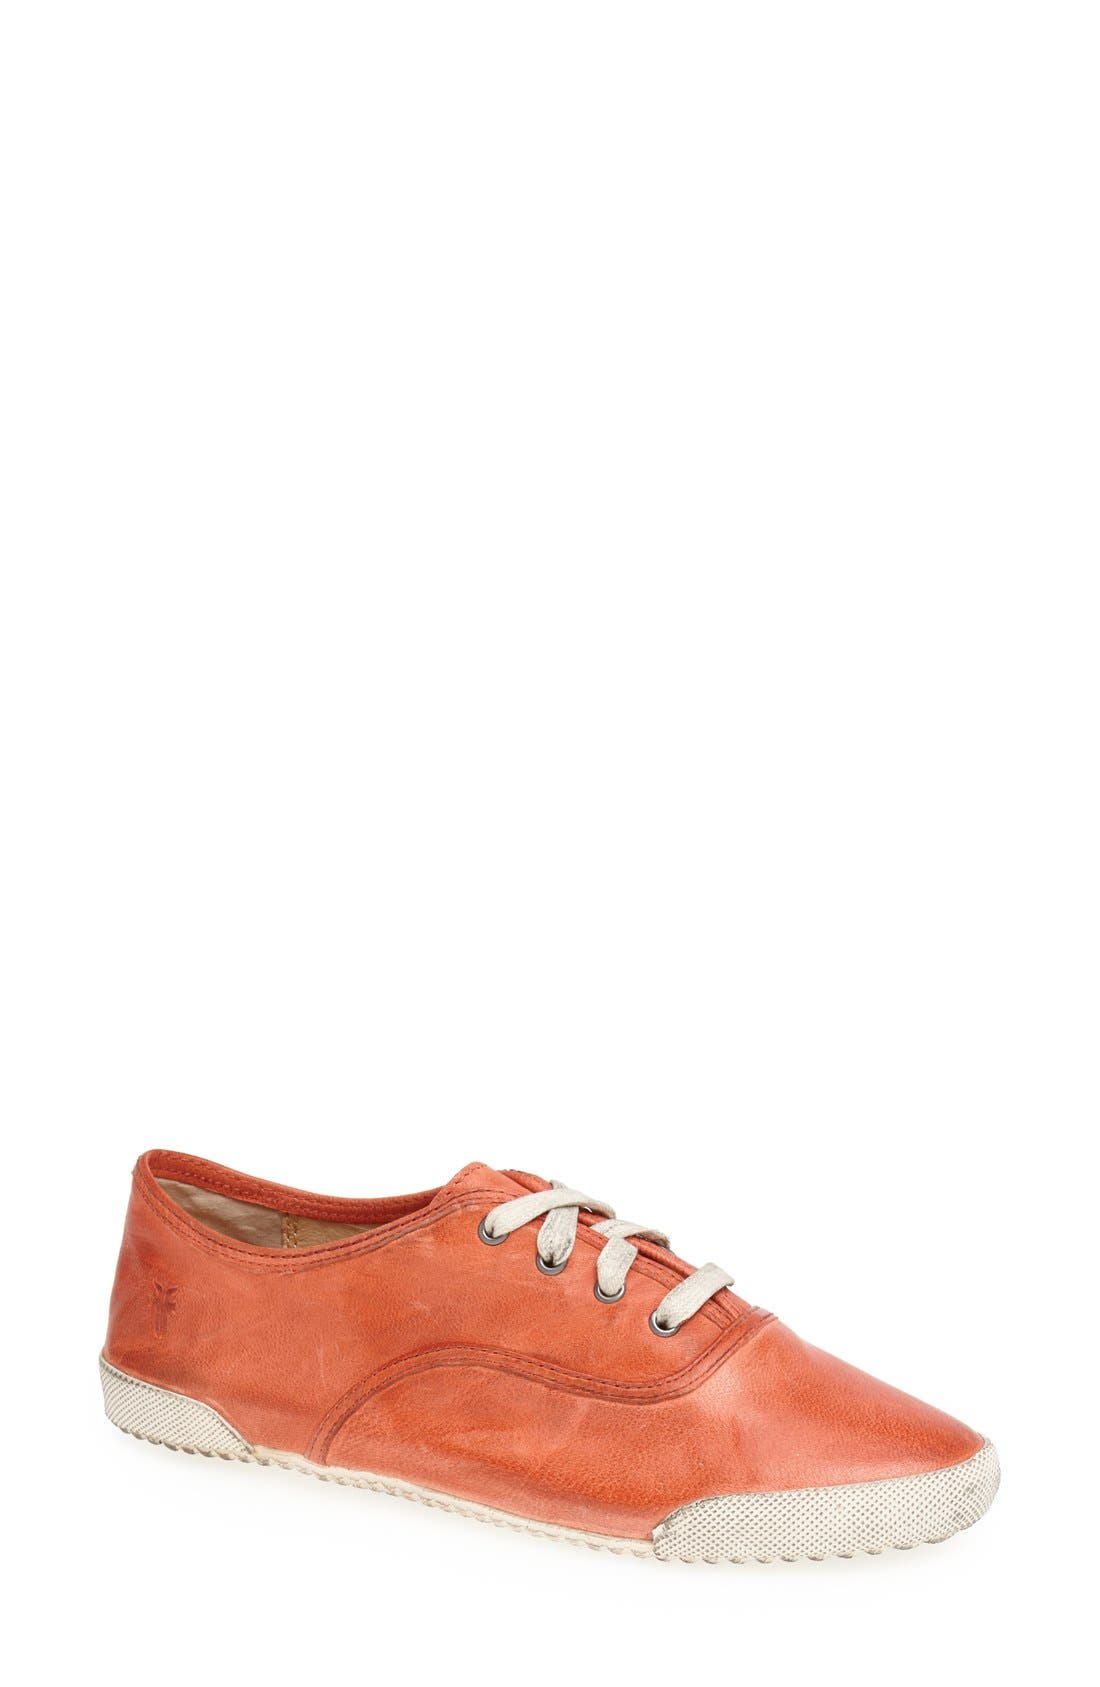 Alternate Image 1 Selected - Frye 'Melanie' Leather Sneaker (Women)